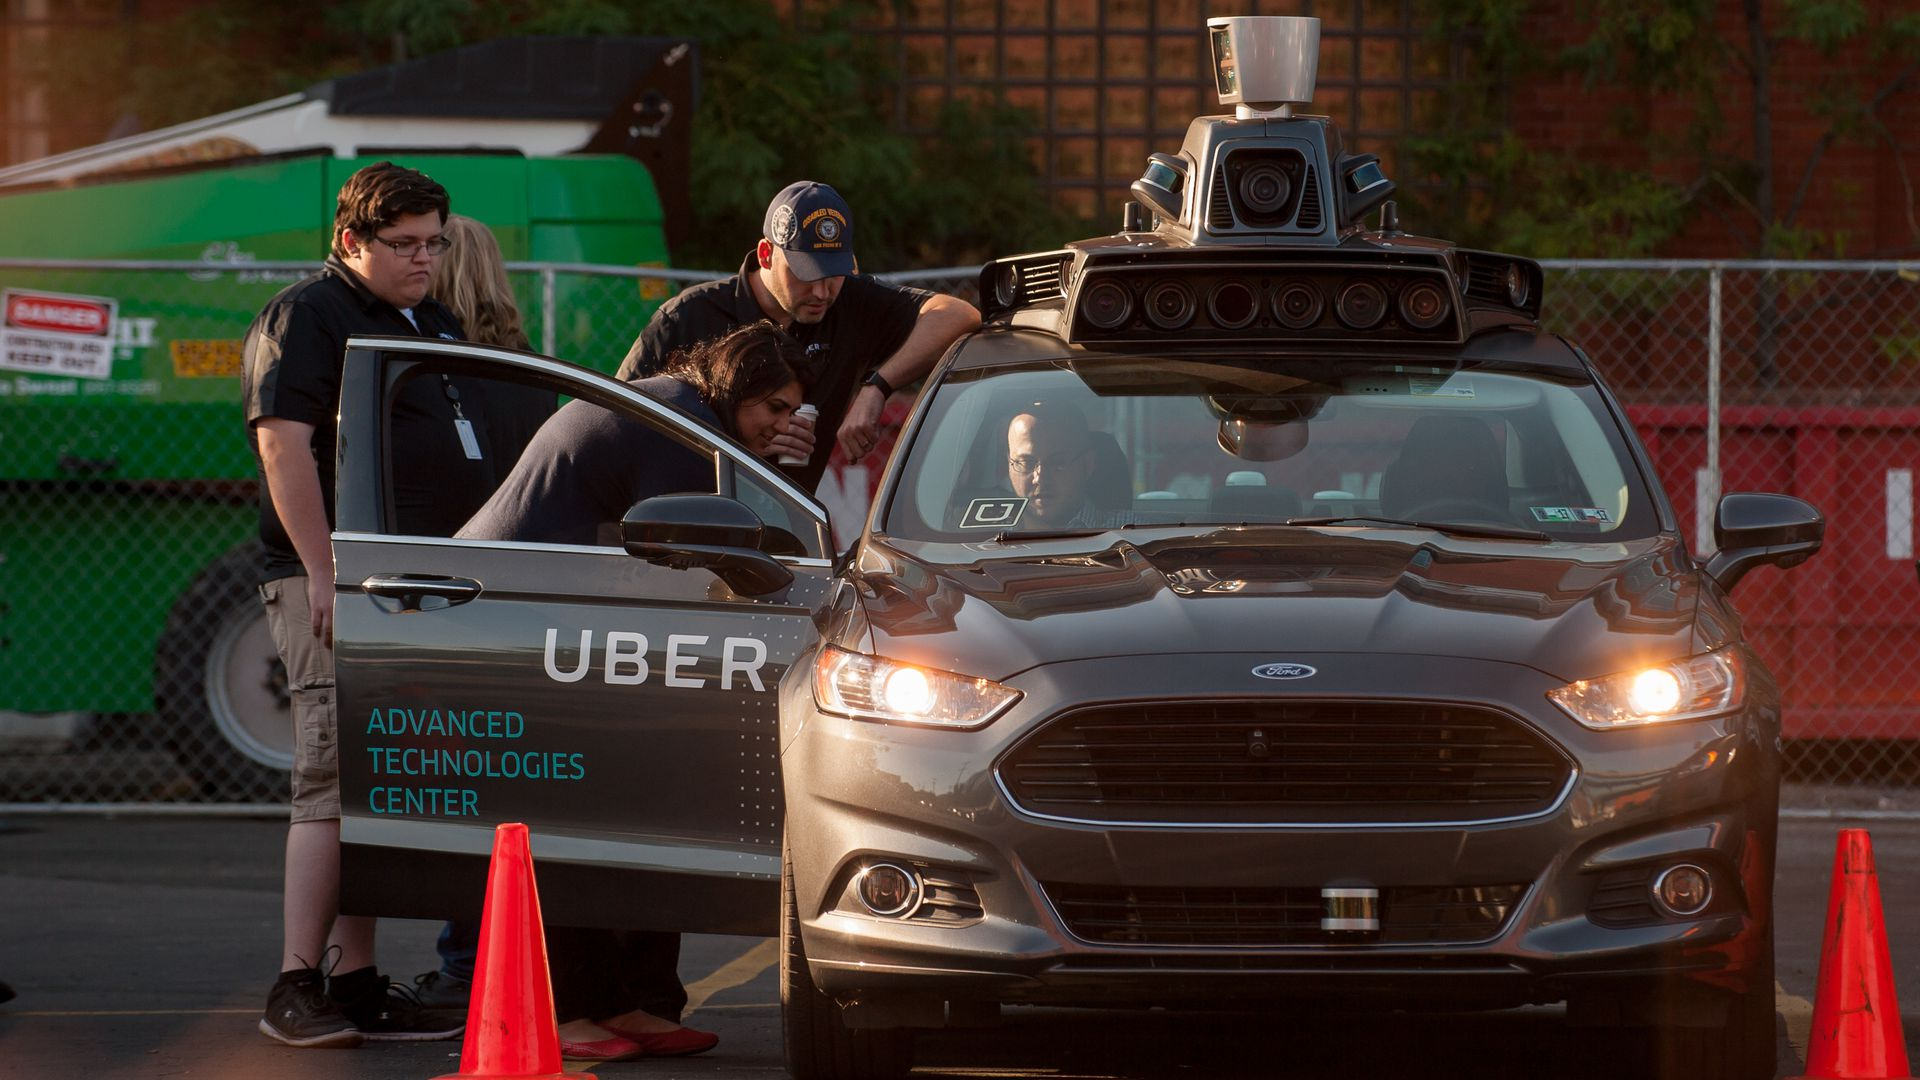 people crowd around a self-driving Uber vehicle in a parking lot